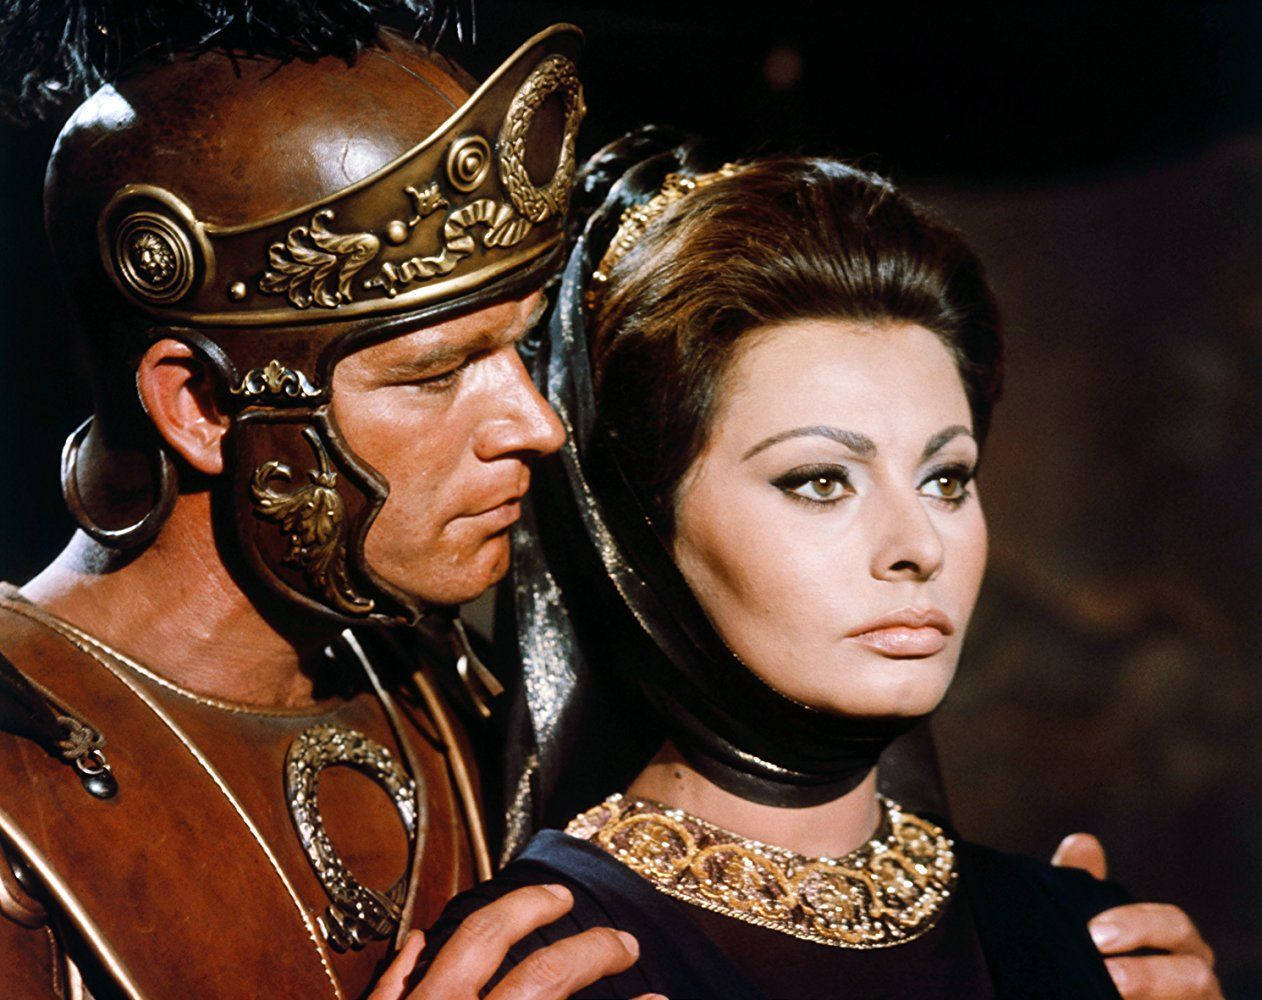 Sophia Loren And Stephen Boyd In The Fall Of The Roman Empire